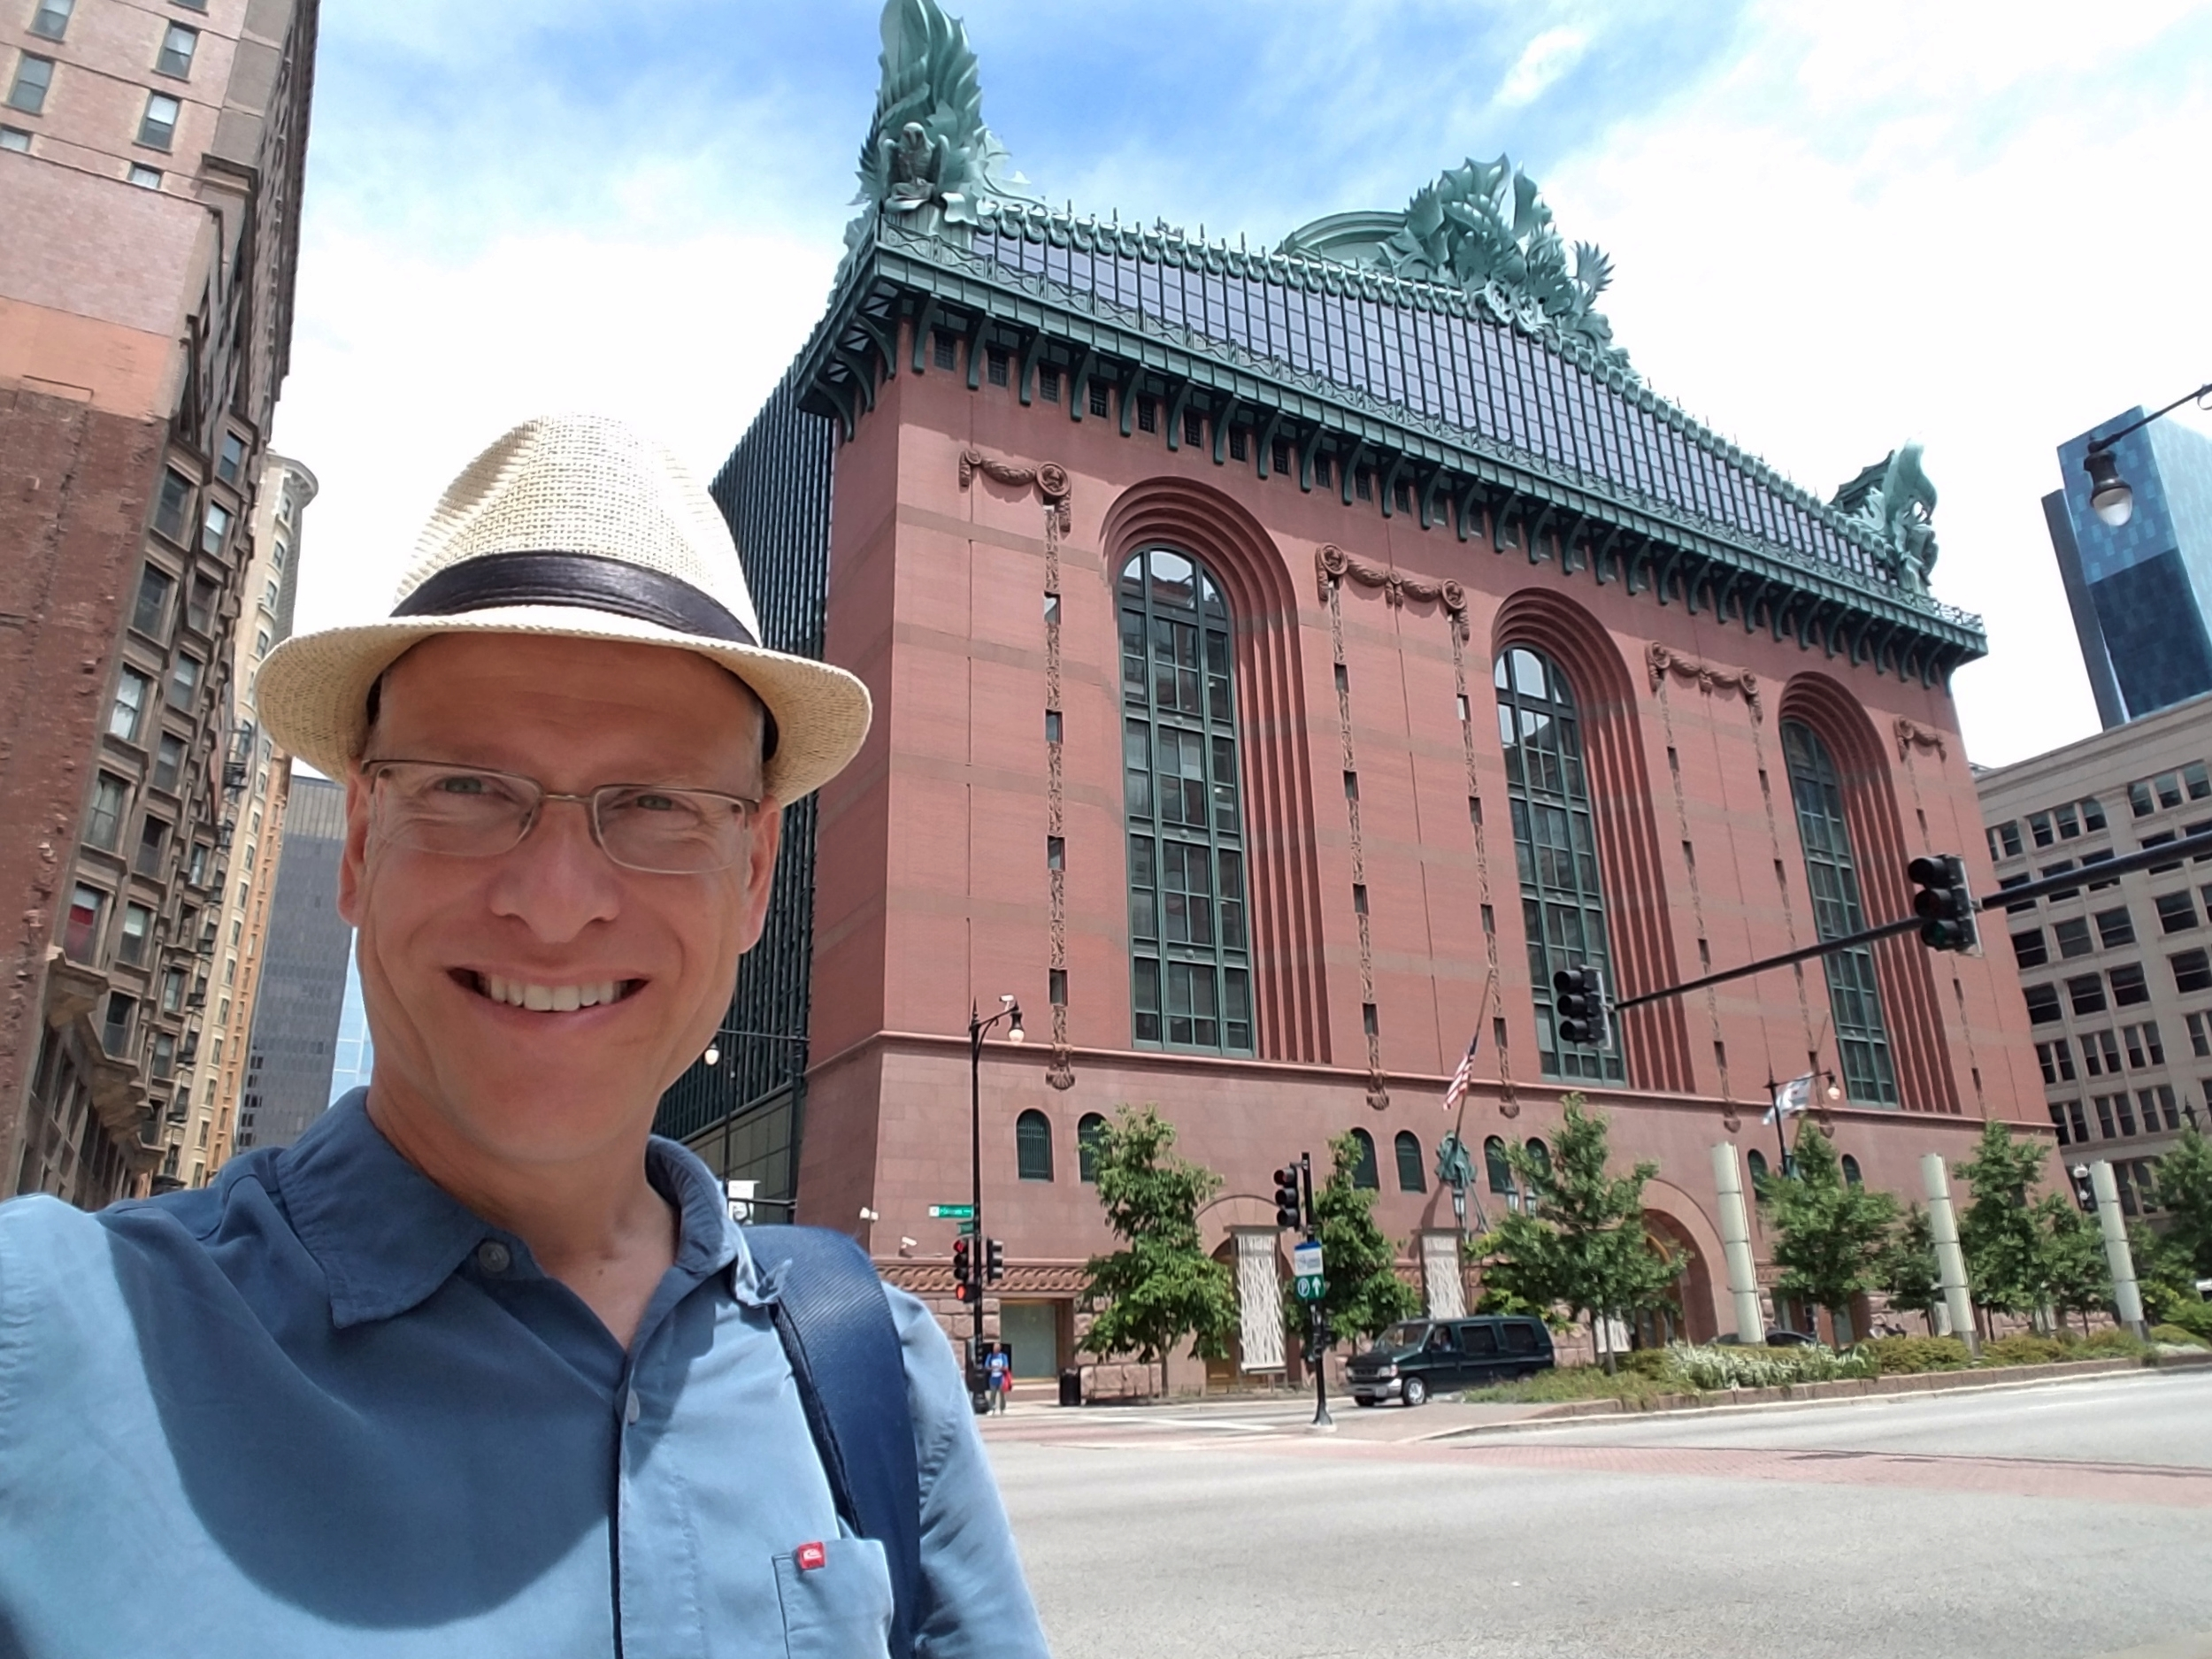 Historicpavement.com author Robin Williams in front of the Harold Washington Library in Chicago